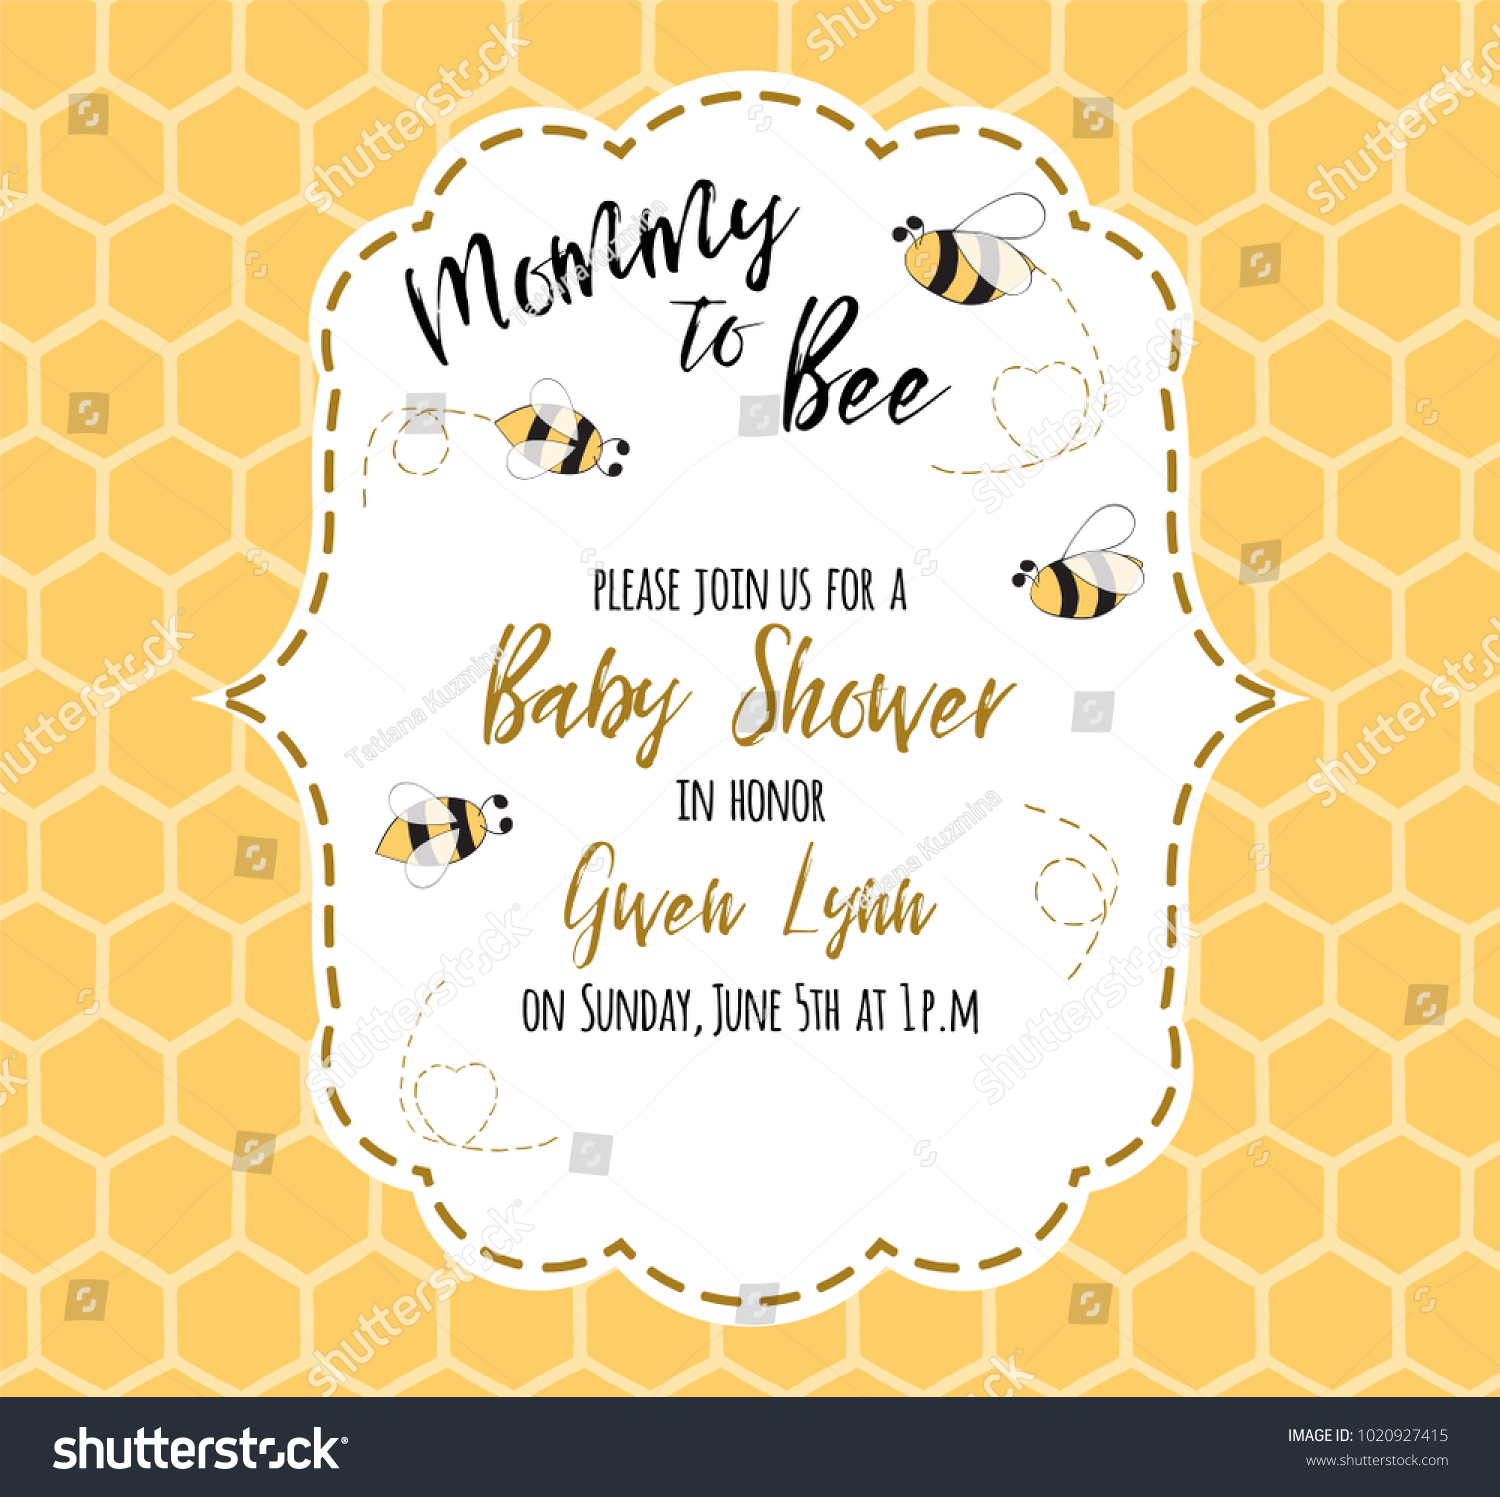 Baby Shower Invitation Template Text Mommy Stock Vector 1020927415 ...